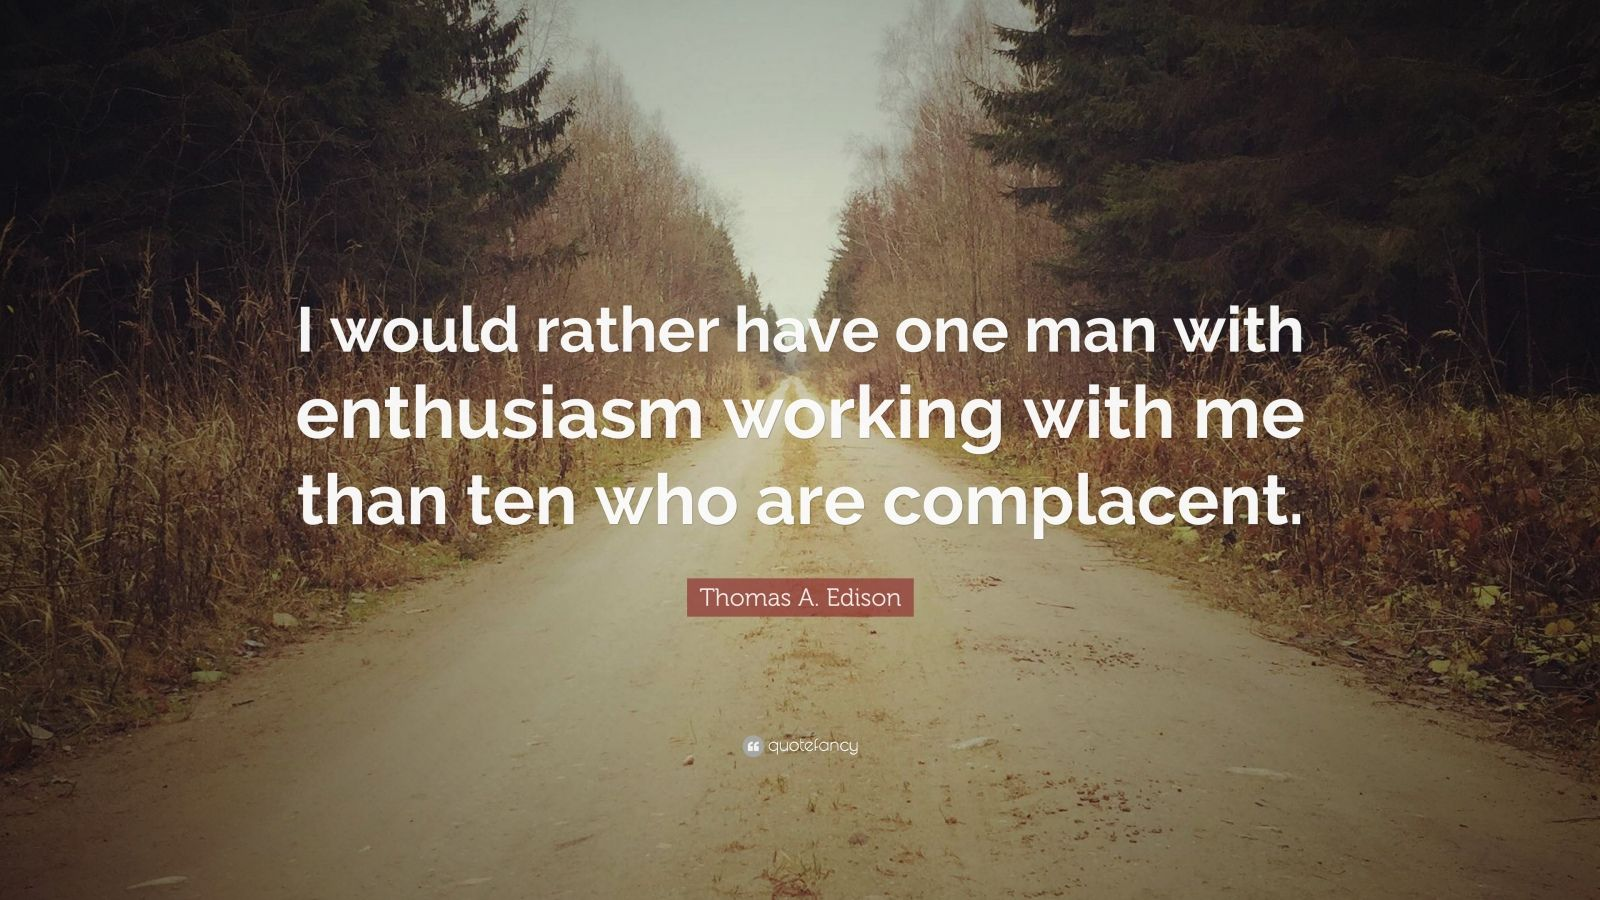 """Thomas A. Edison Quote: """"I would rather have one man with enthusiasm working with me than ten who are complacent."""""""